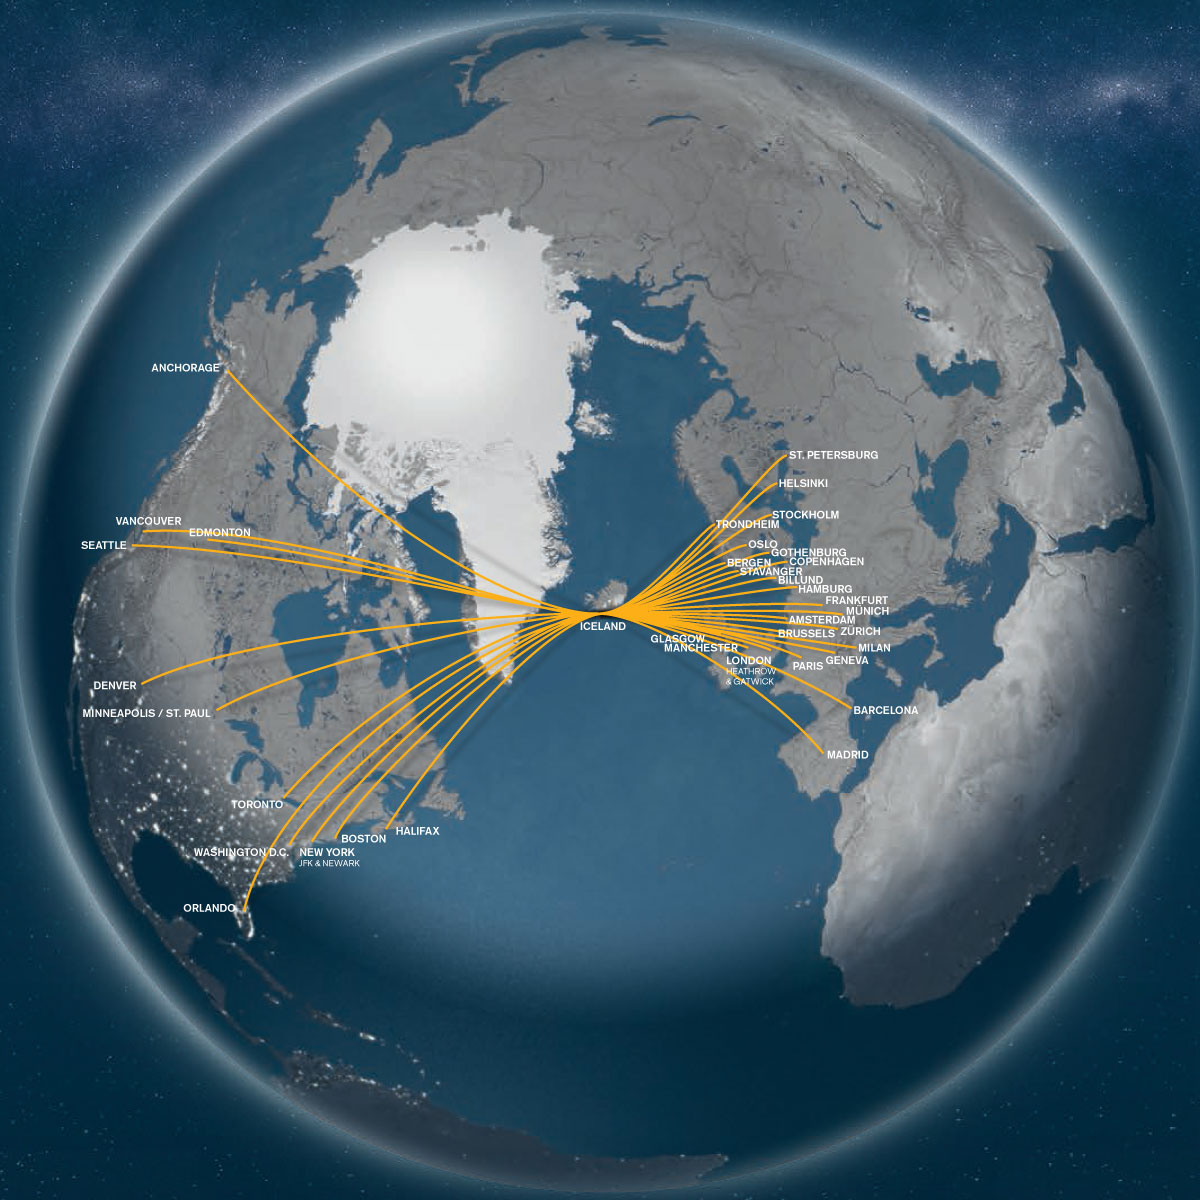 http://www.icelandair.com/other_files/icelandair/com/routemap-aug2013.jpg